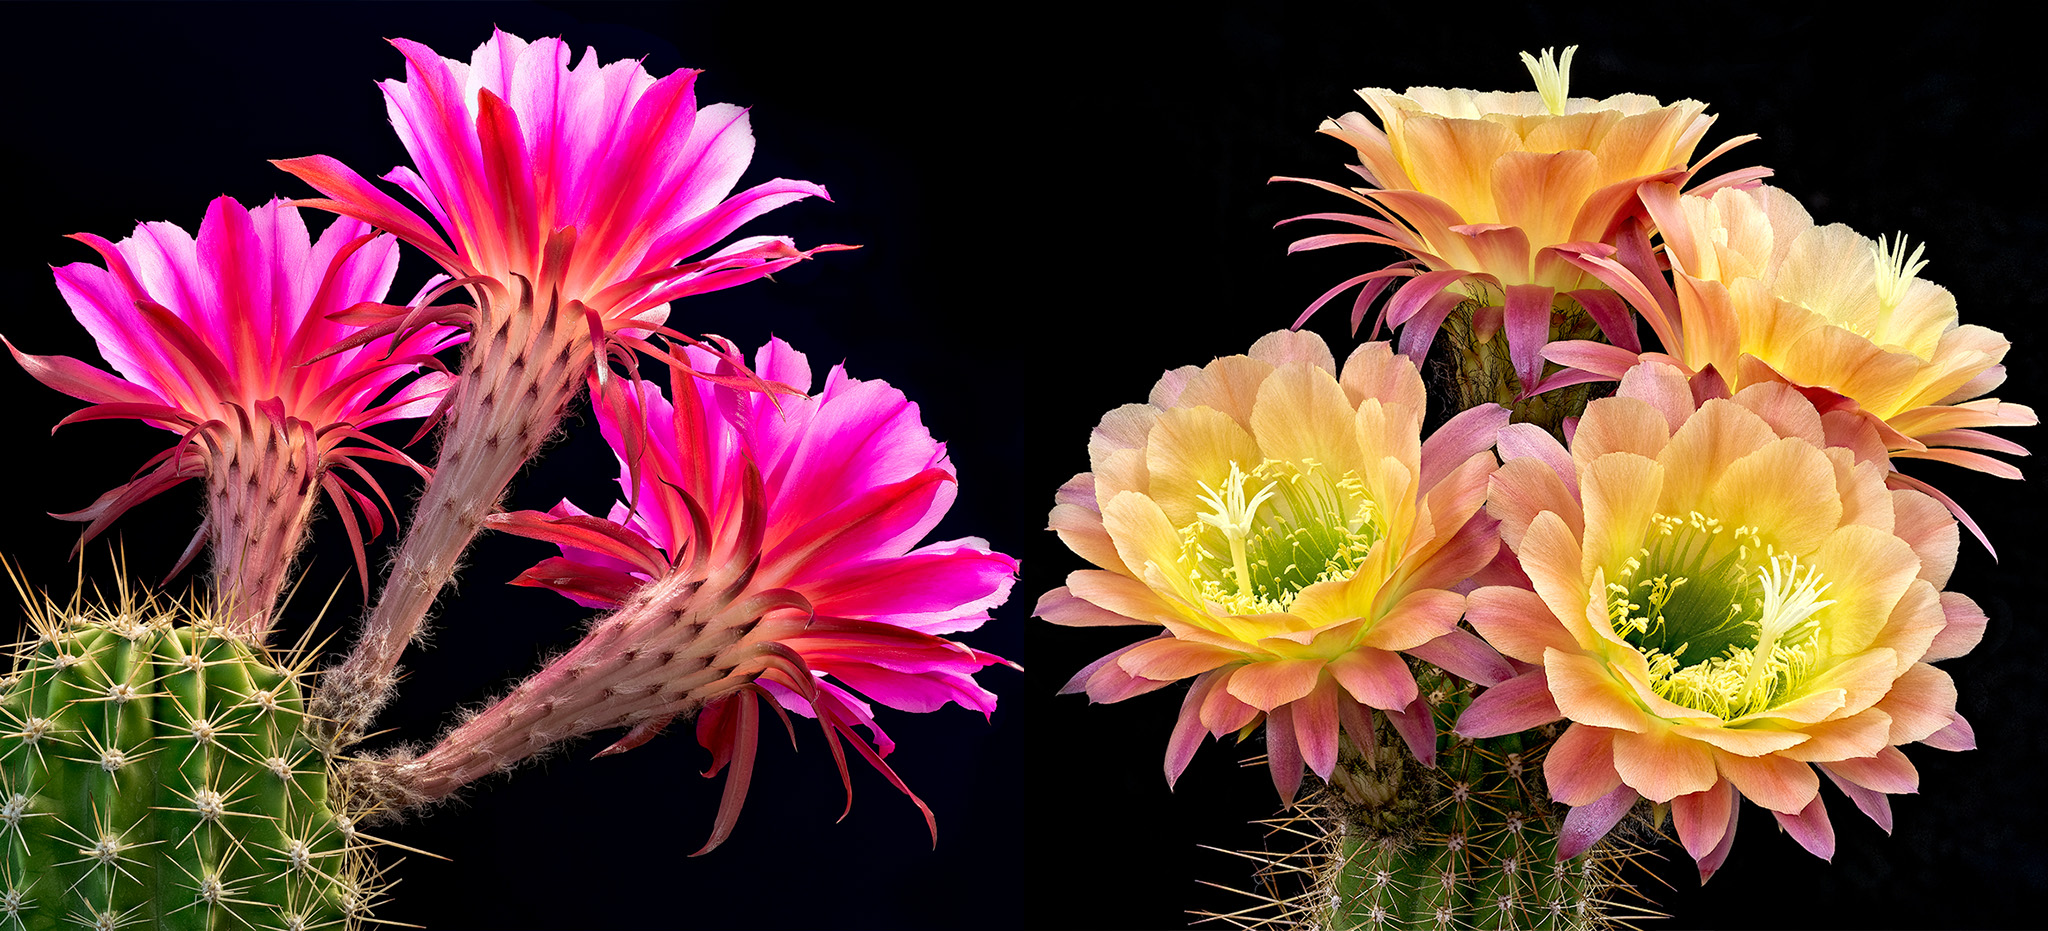 Yellow Wallpapers With Quotes Cactus Flower Image 13747 Hdwpro